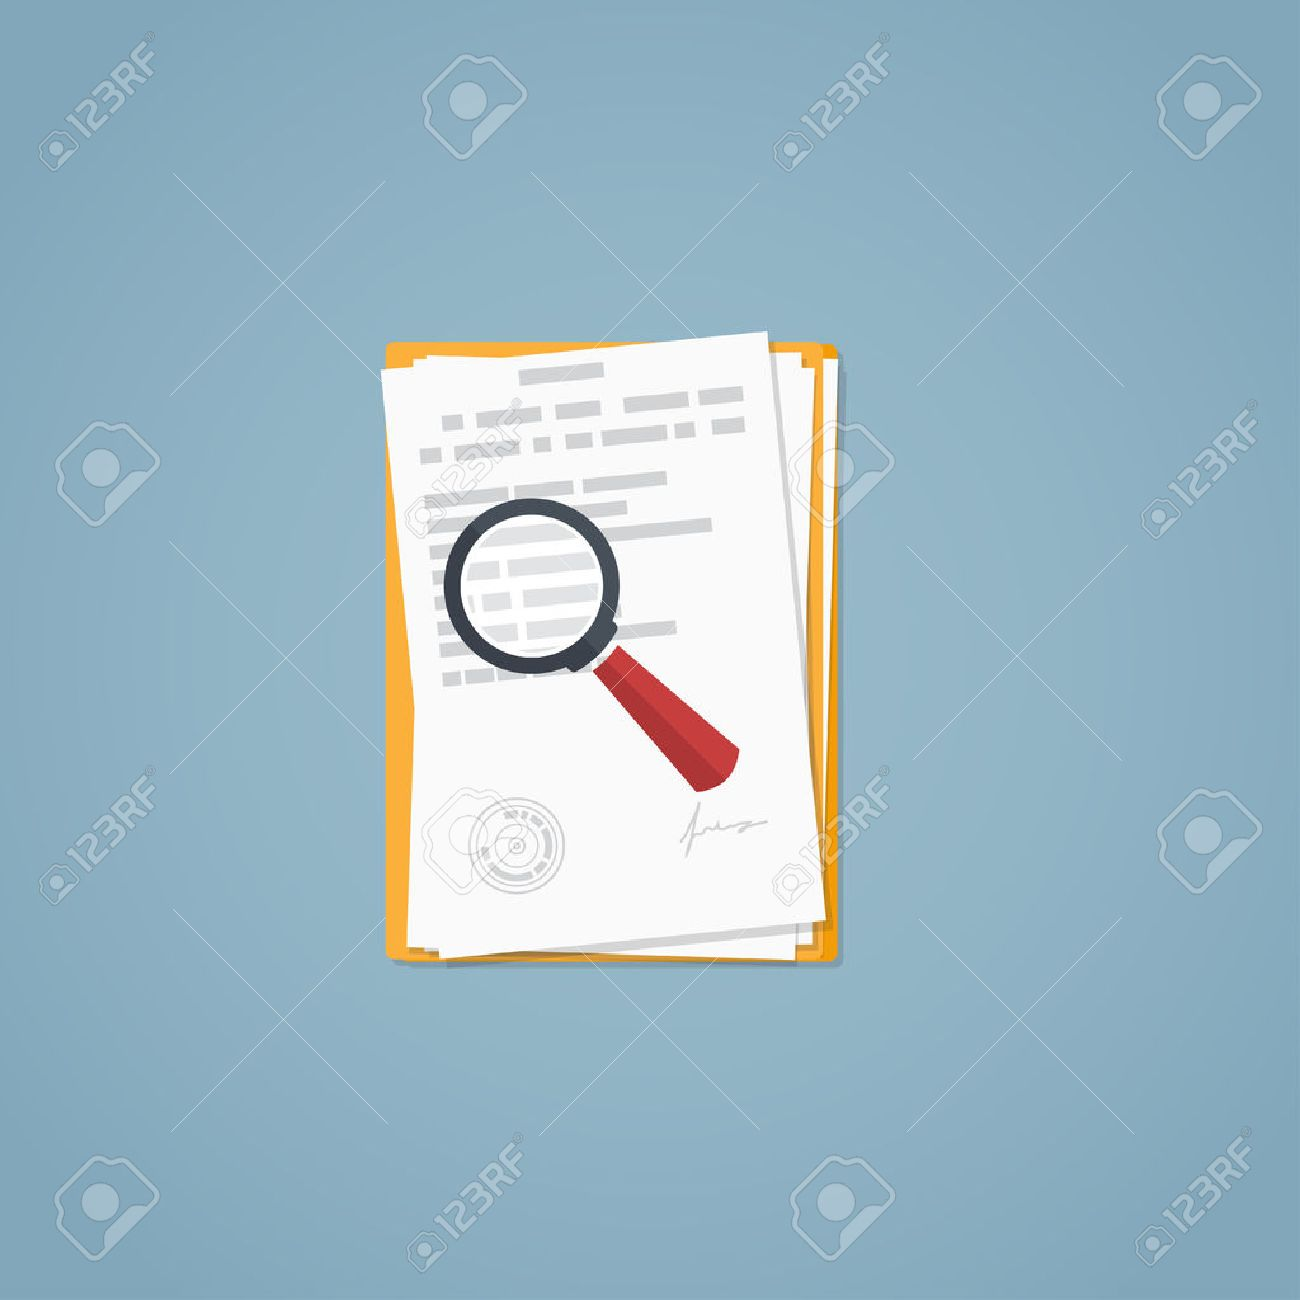 Flat illustration. Documents, magnifying glass, business papers. Signed agreement. Investigation research. - 53274489